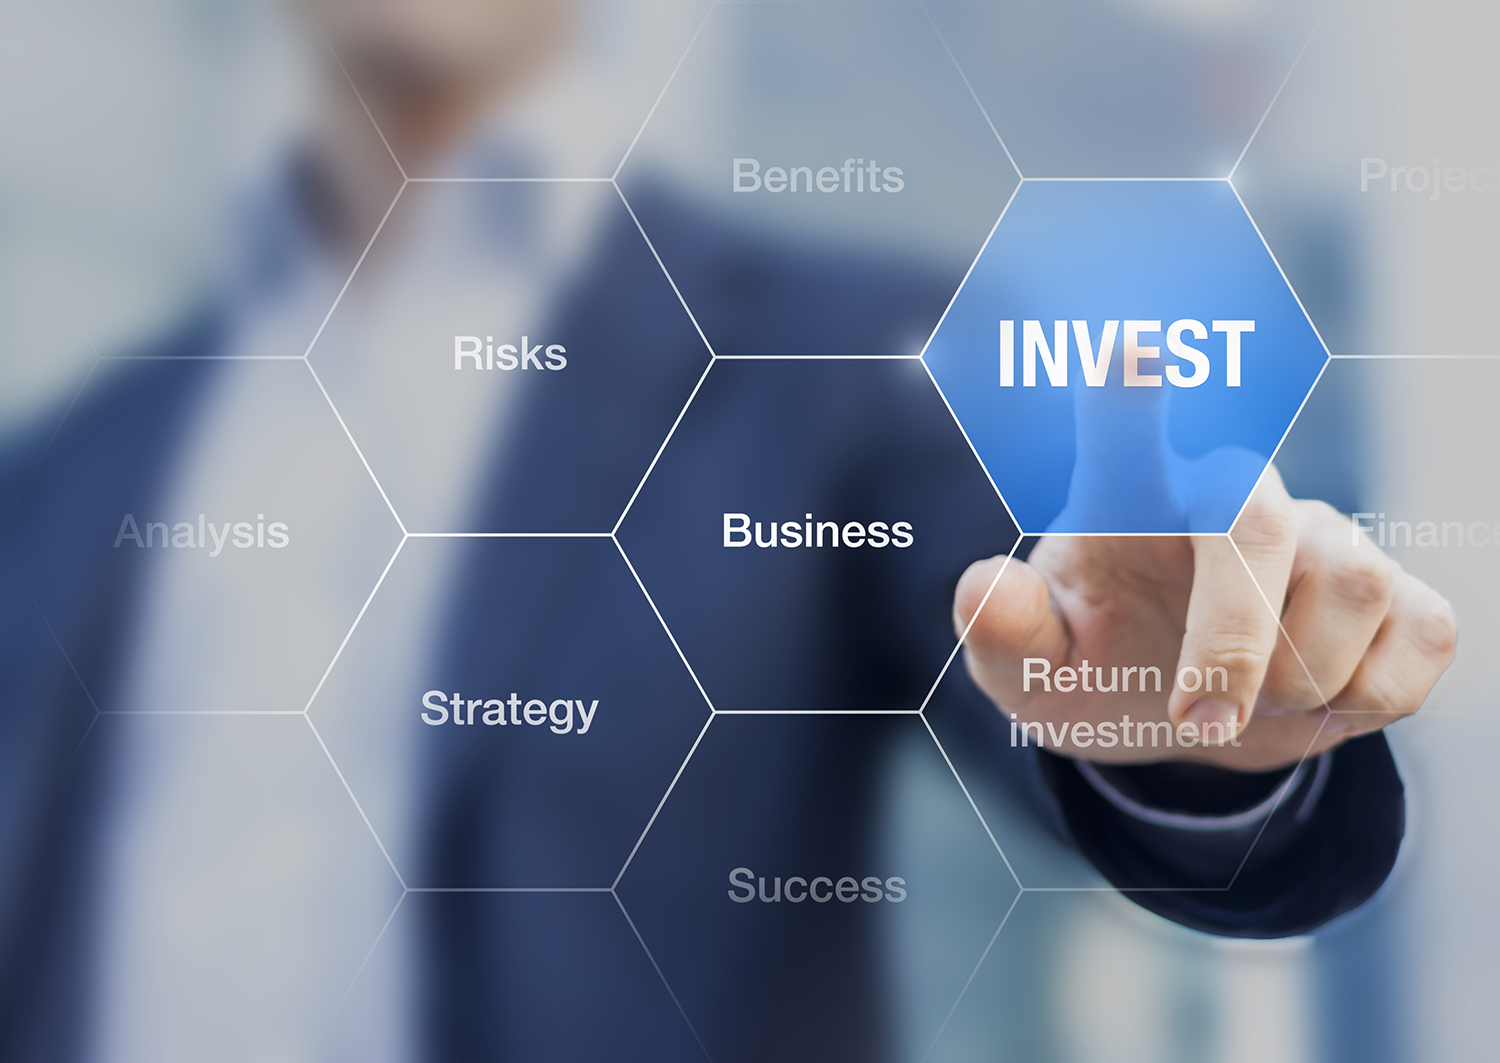 An image of a hand pointing at the word invest.